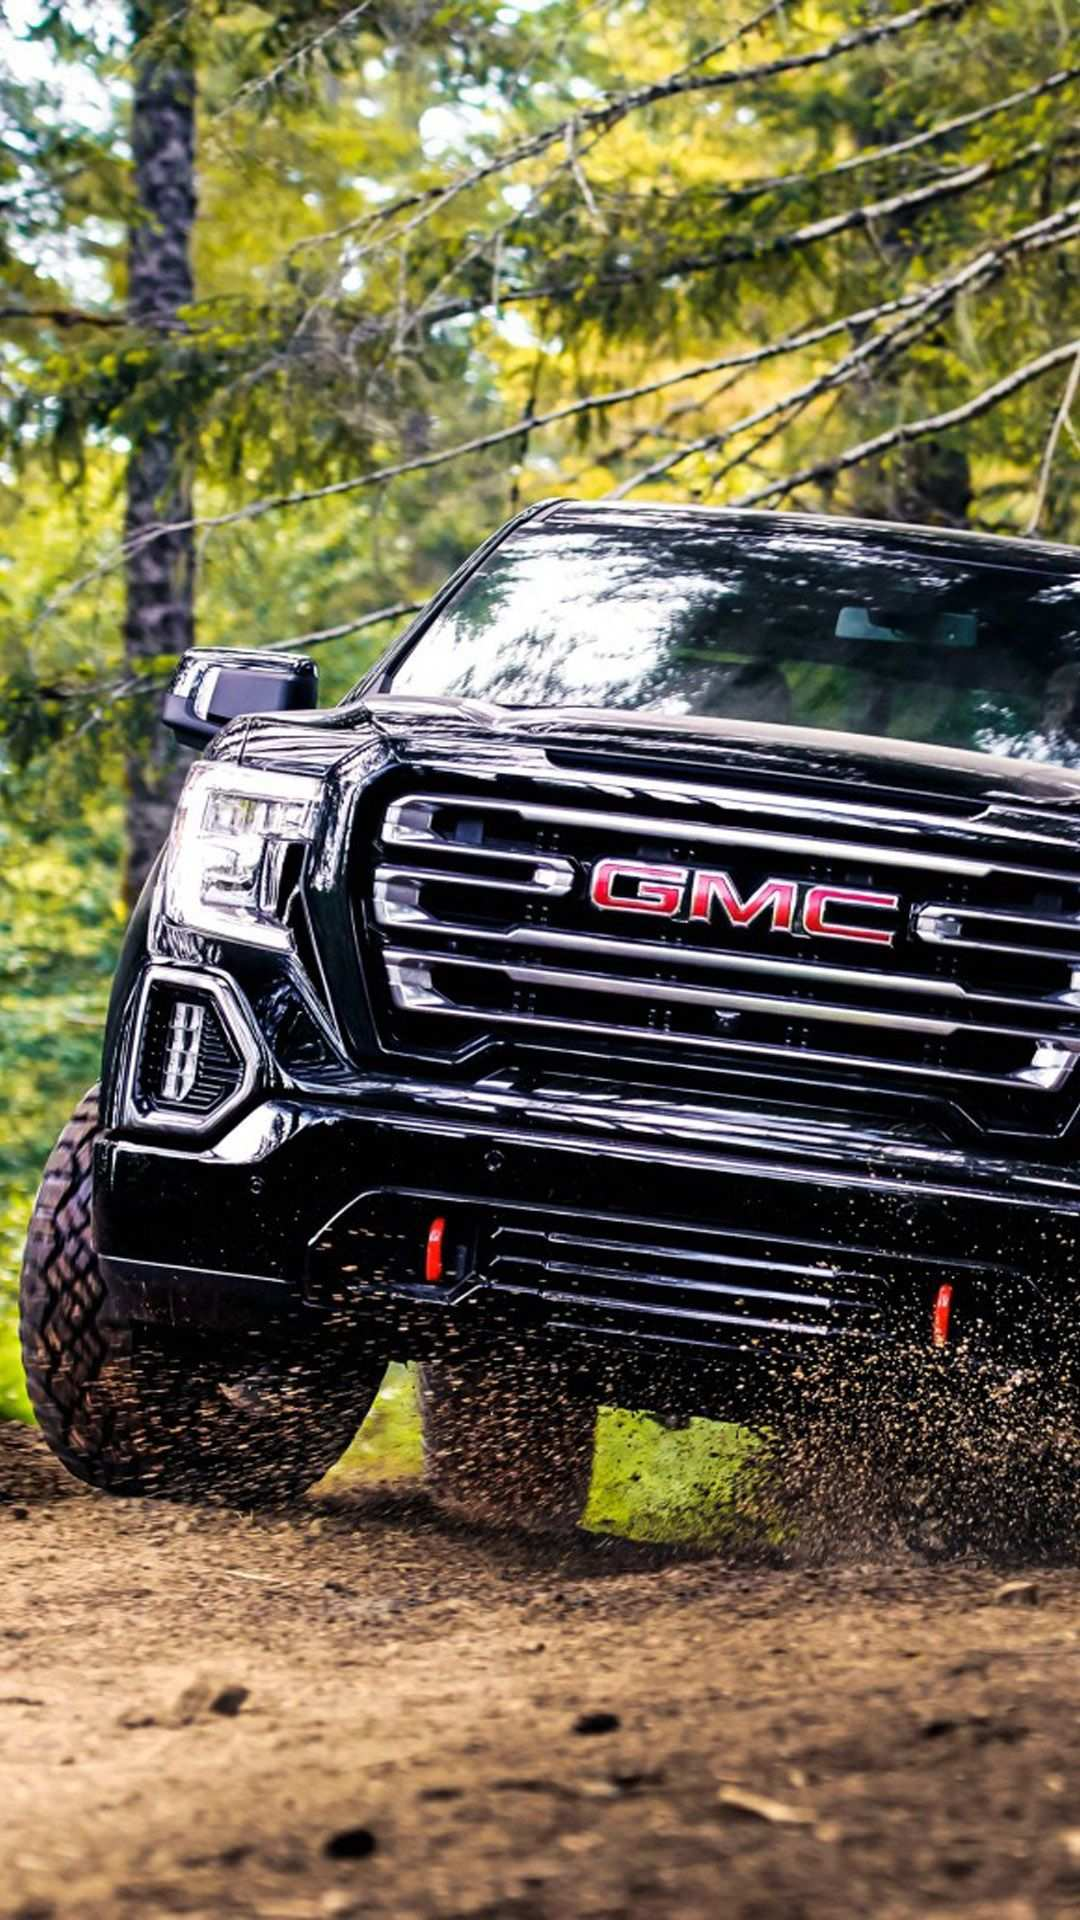 38 New Gmc Wallpaper Pricing with Gmc Wallpaper